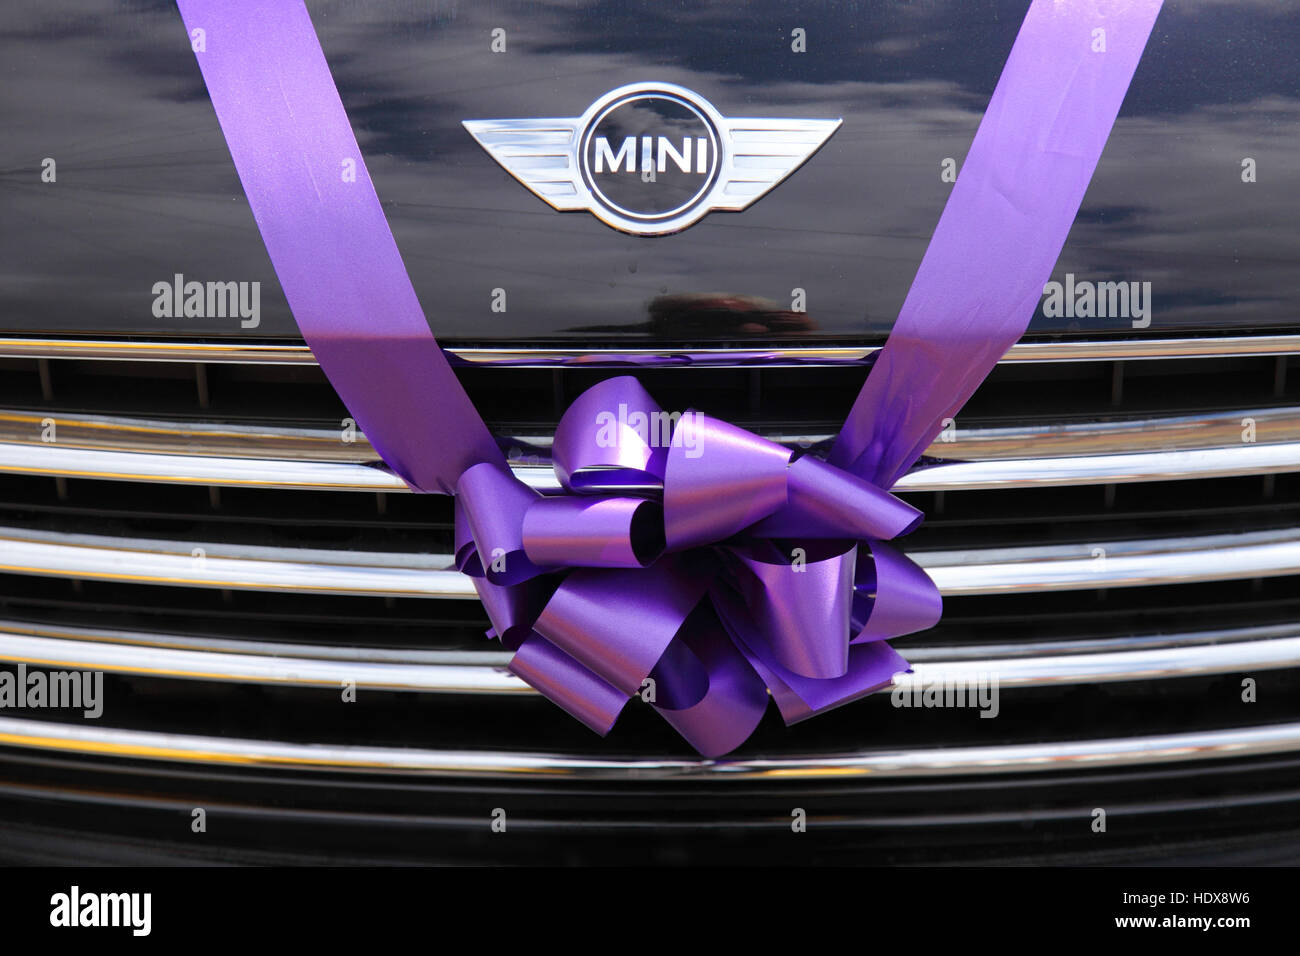 BMW Mini used as a wedding car, tied with a pink purple ribbon and bow over the radiator grill. - Stock Image